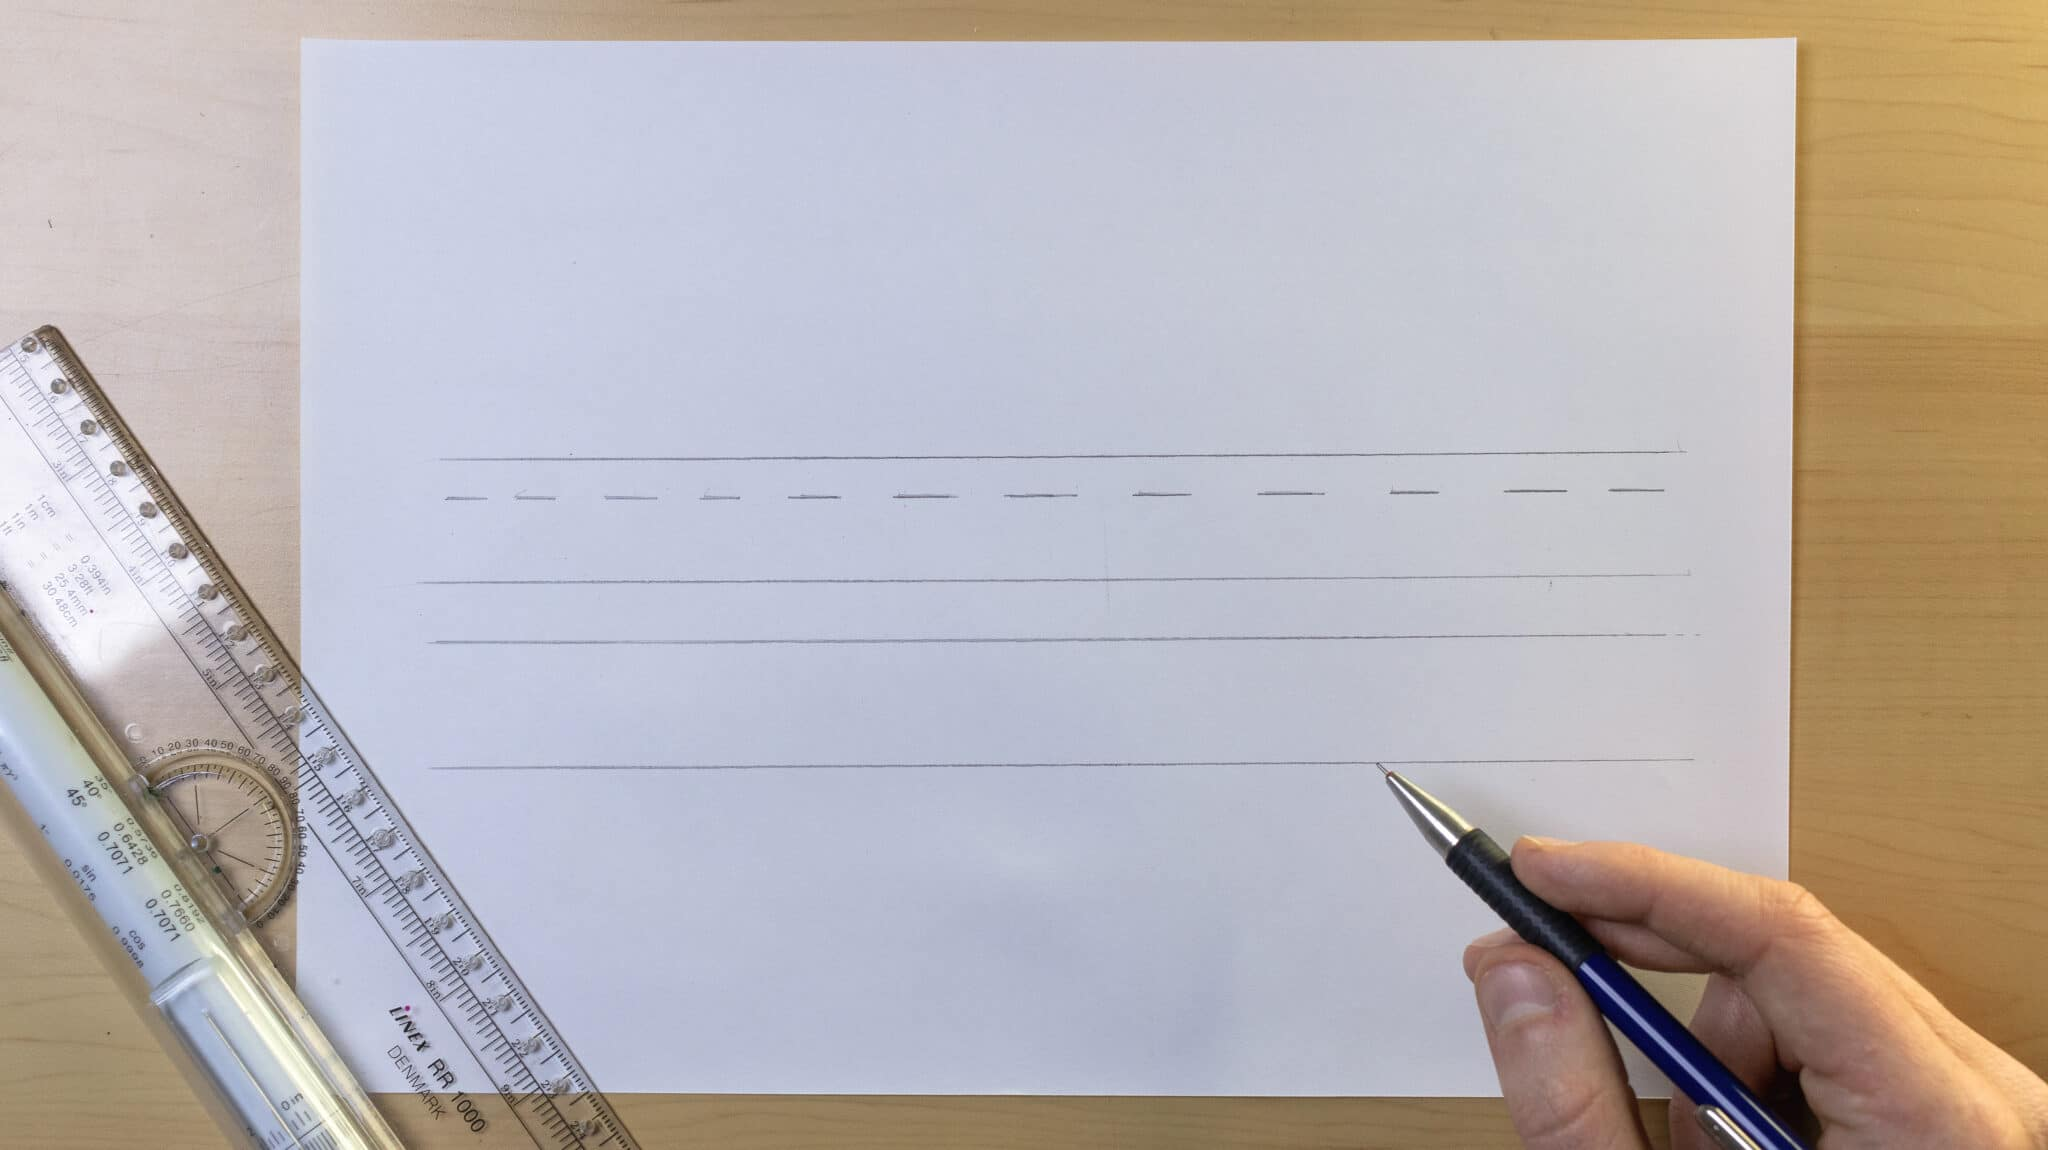 How To Make Calligraphy Guidelines Image 6 - Lettering Daily